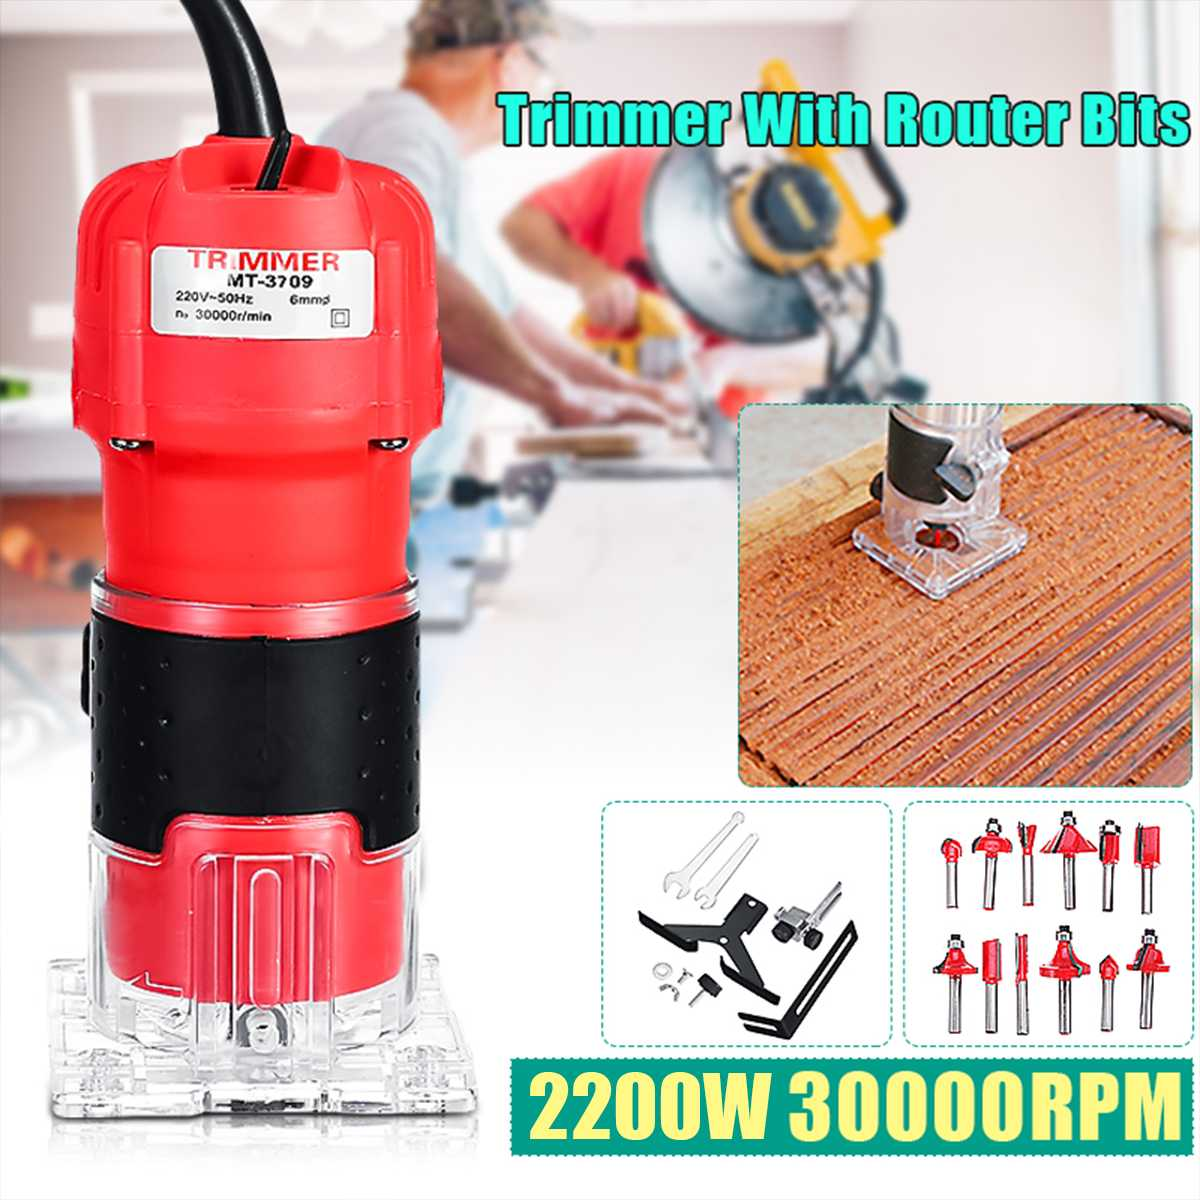 2200W Woodworking Electric Hand Trimmer Wood Router Joiners Carving Machine 12pc Router Bit Carving Milling Engraving Power Tool